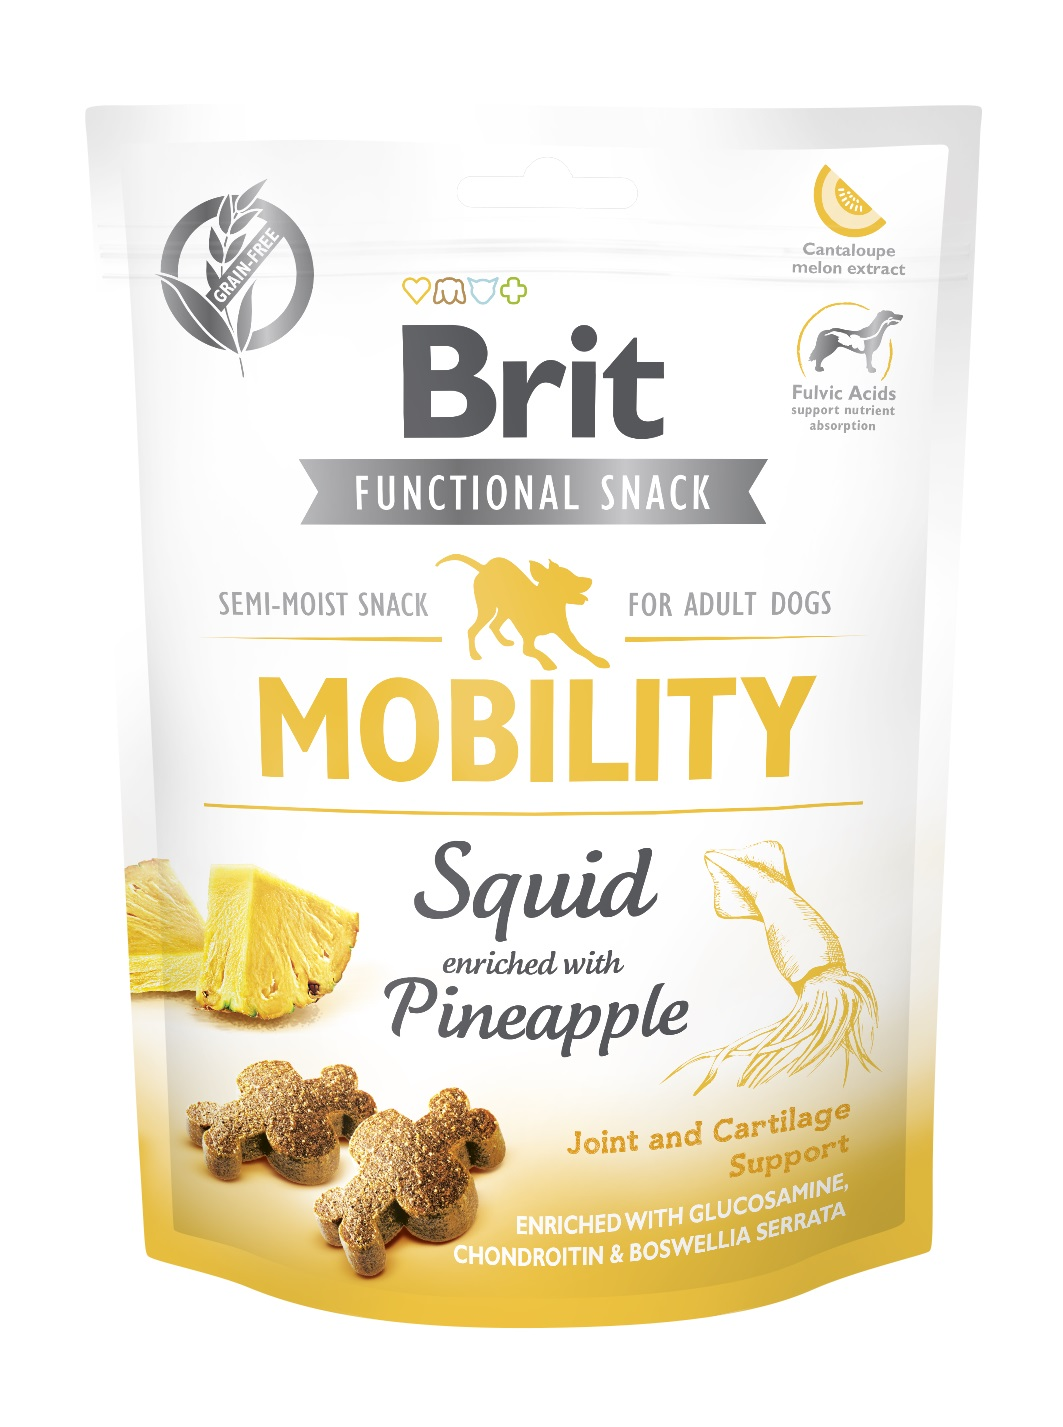 BRIT snack MOBILITY aquidpineapple   - 150g